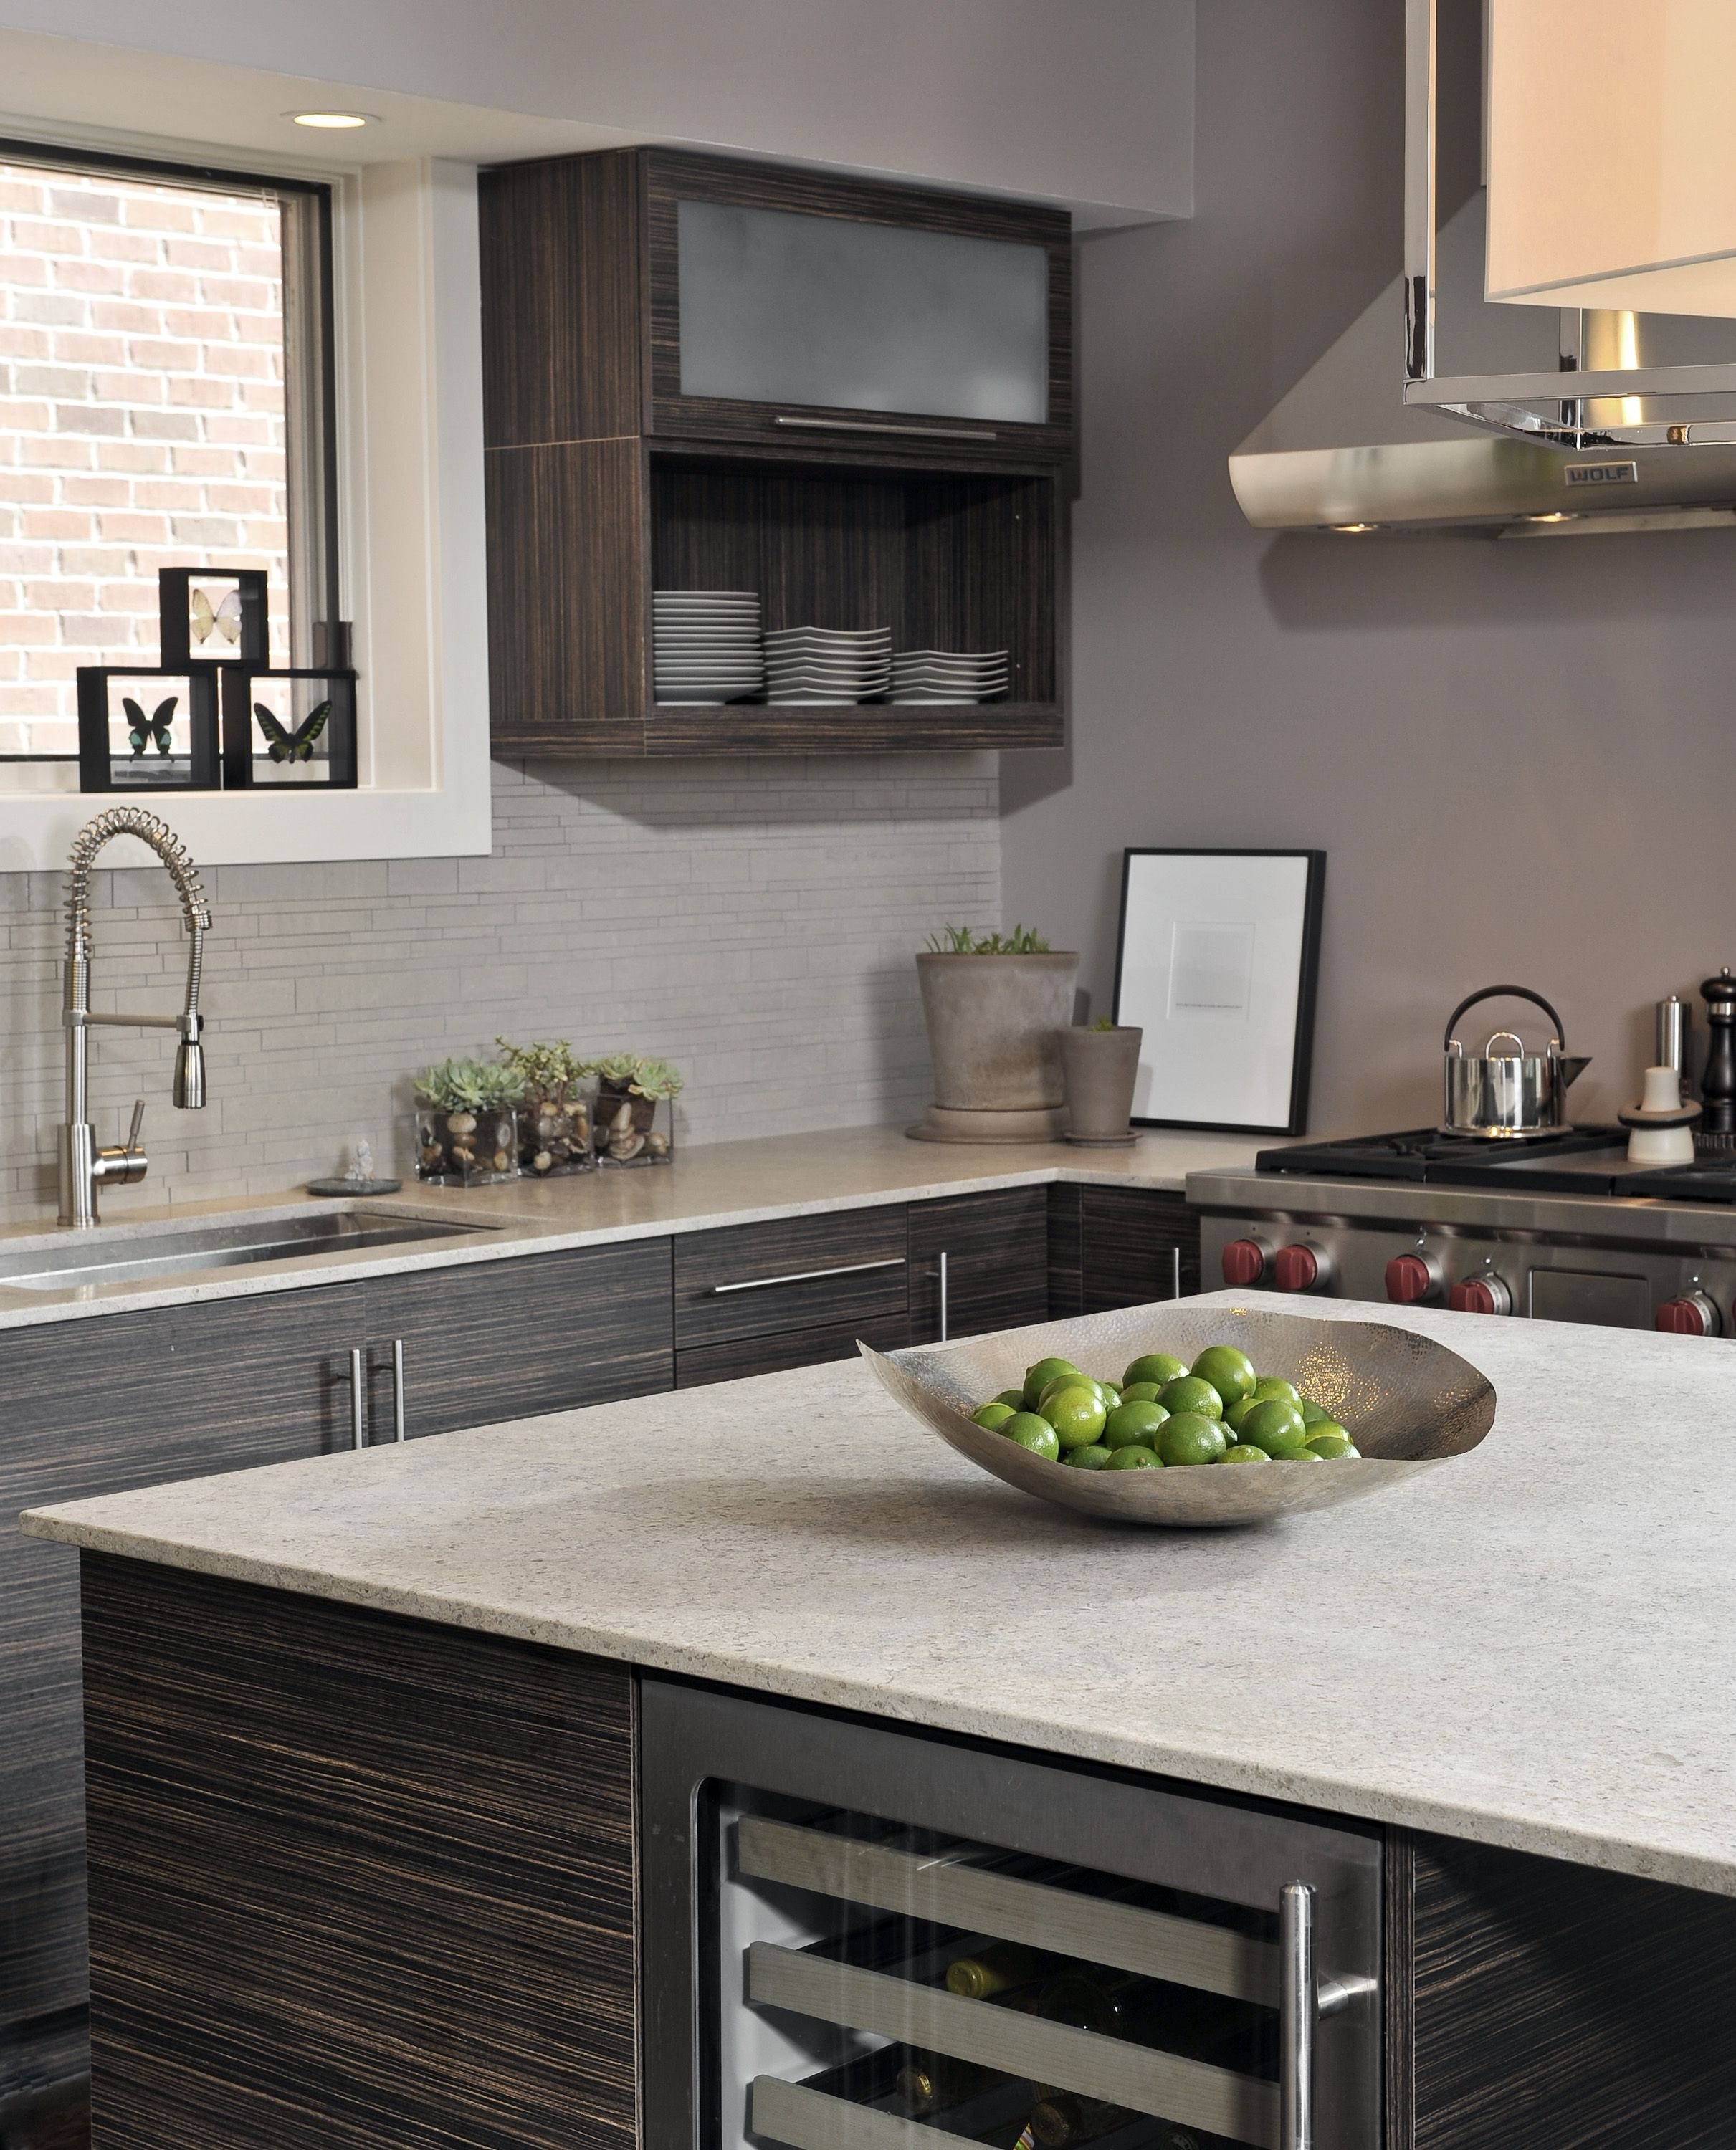 Stone Island top & Countertops K1004 by Marble Emporium ...